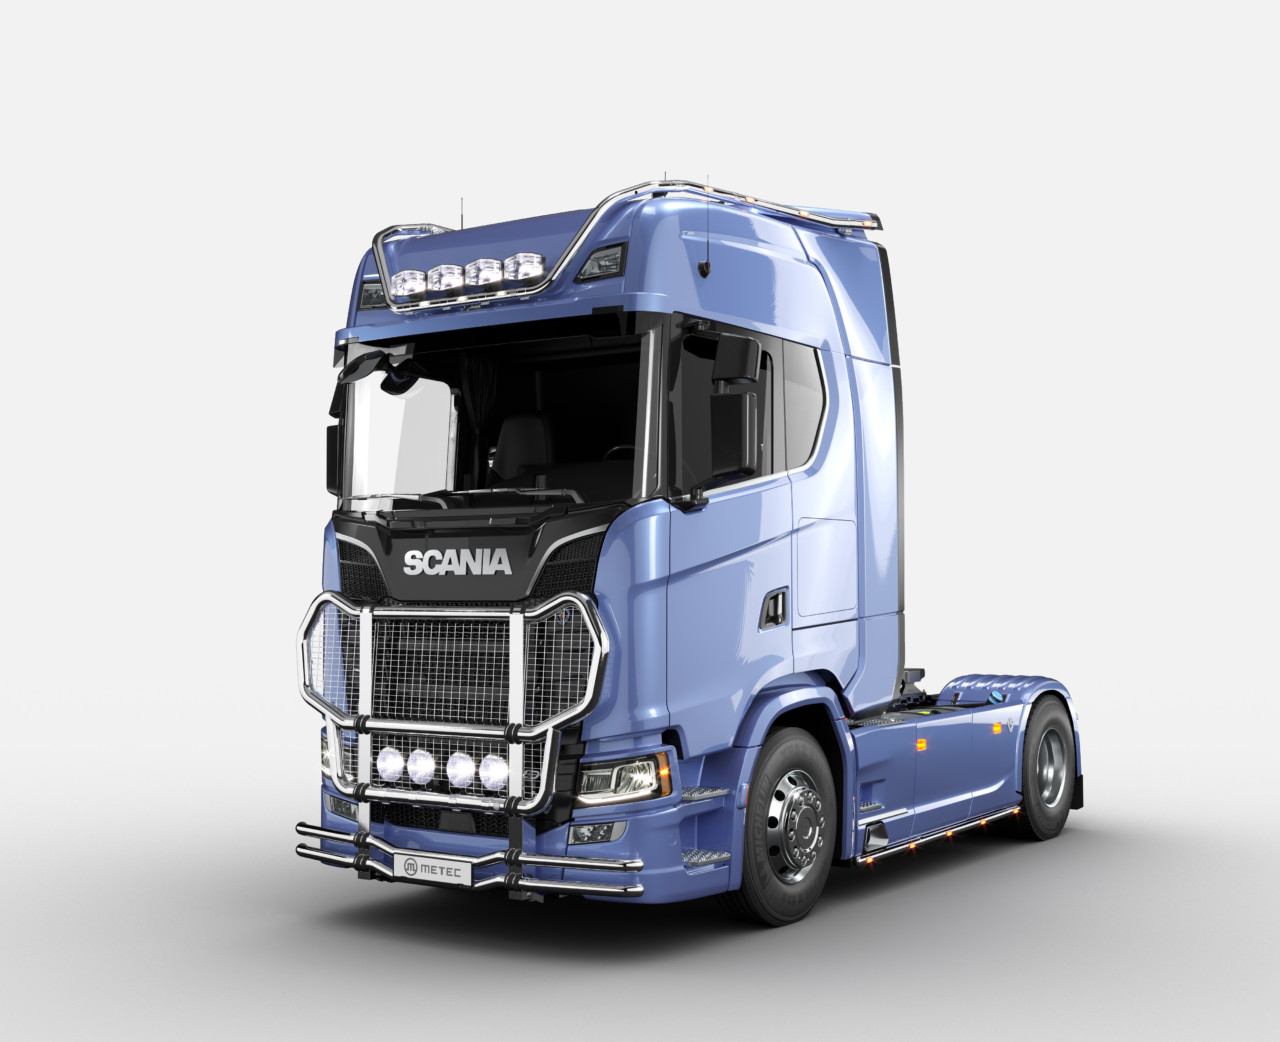 Blue Scania truck with added Metec accessories for road safety.